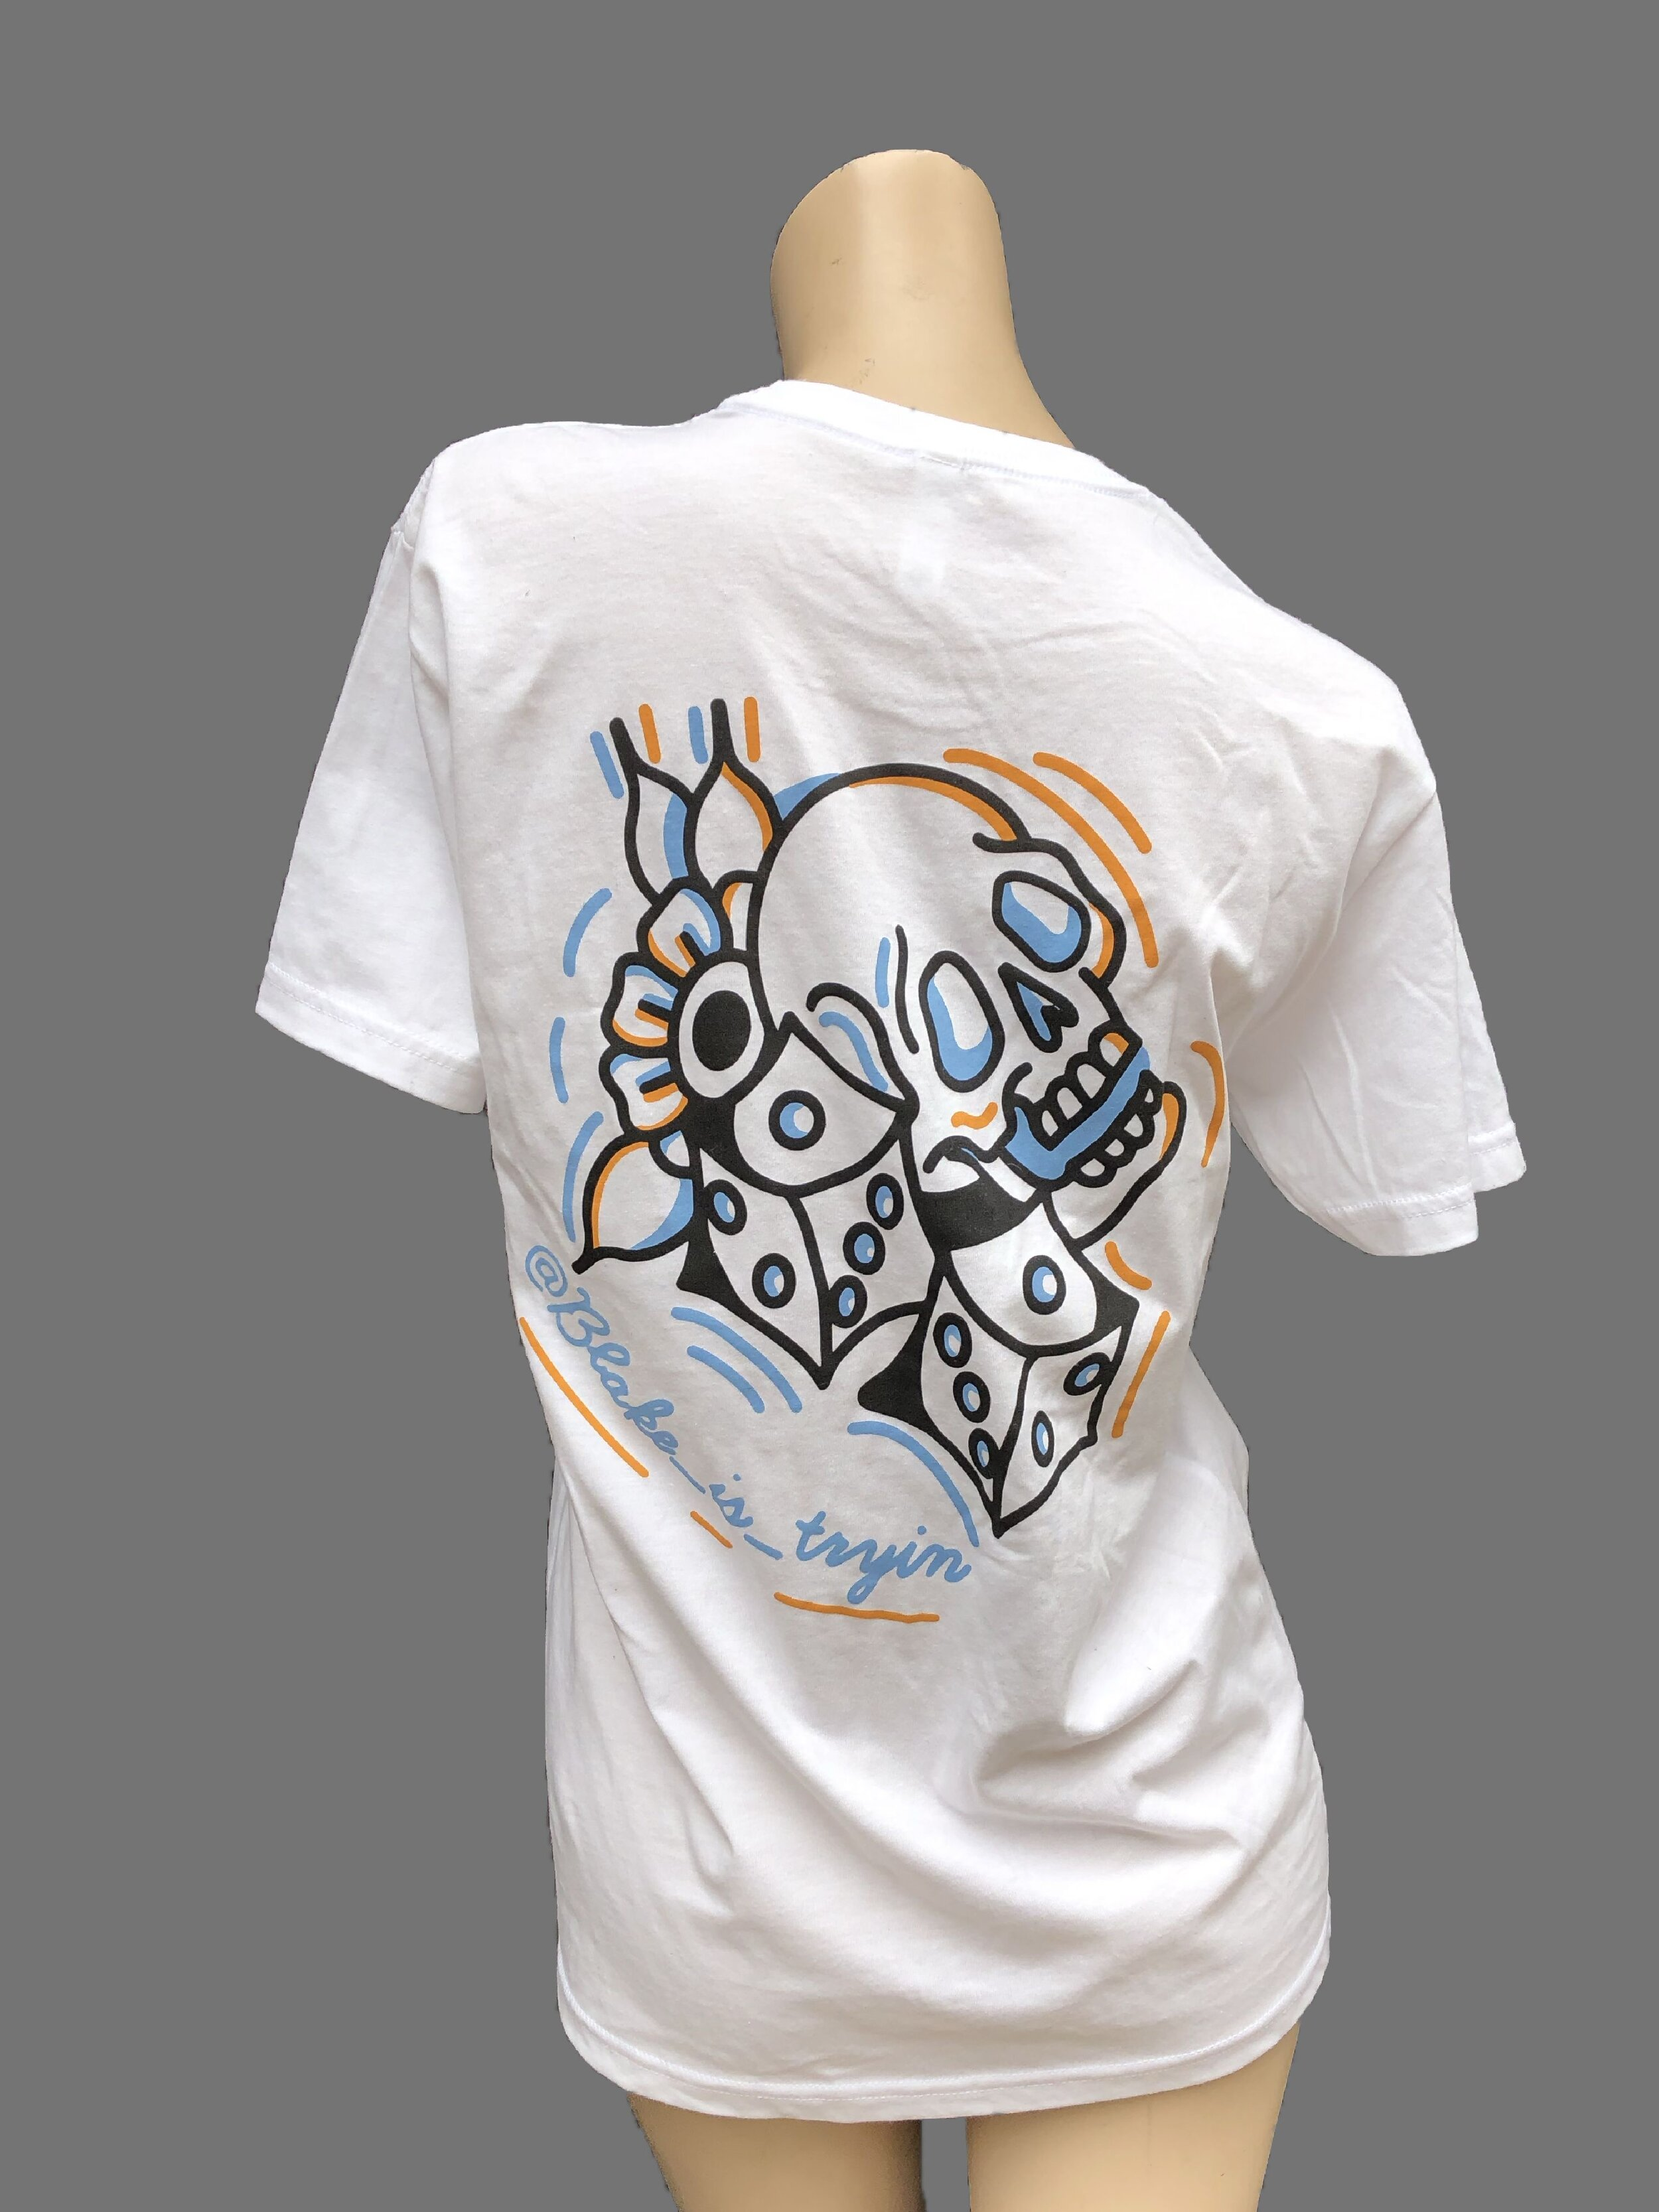 Hand Screen Printed T Shirts Hoodies Jackets And More Apparel Atmos Printing